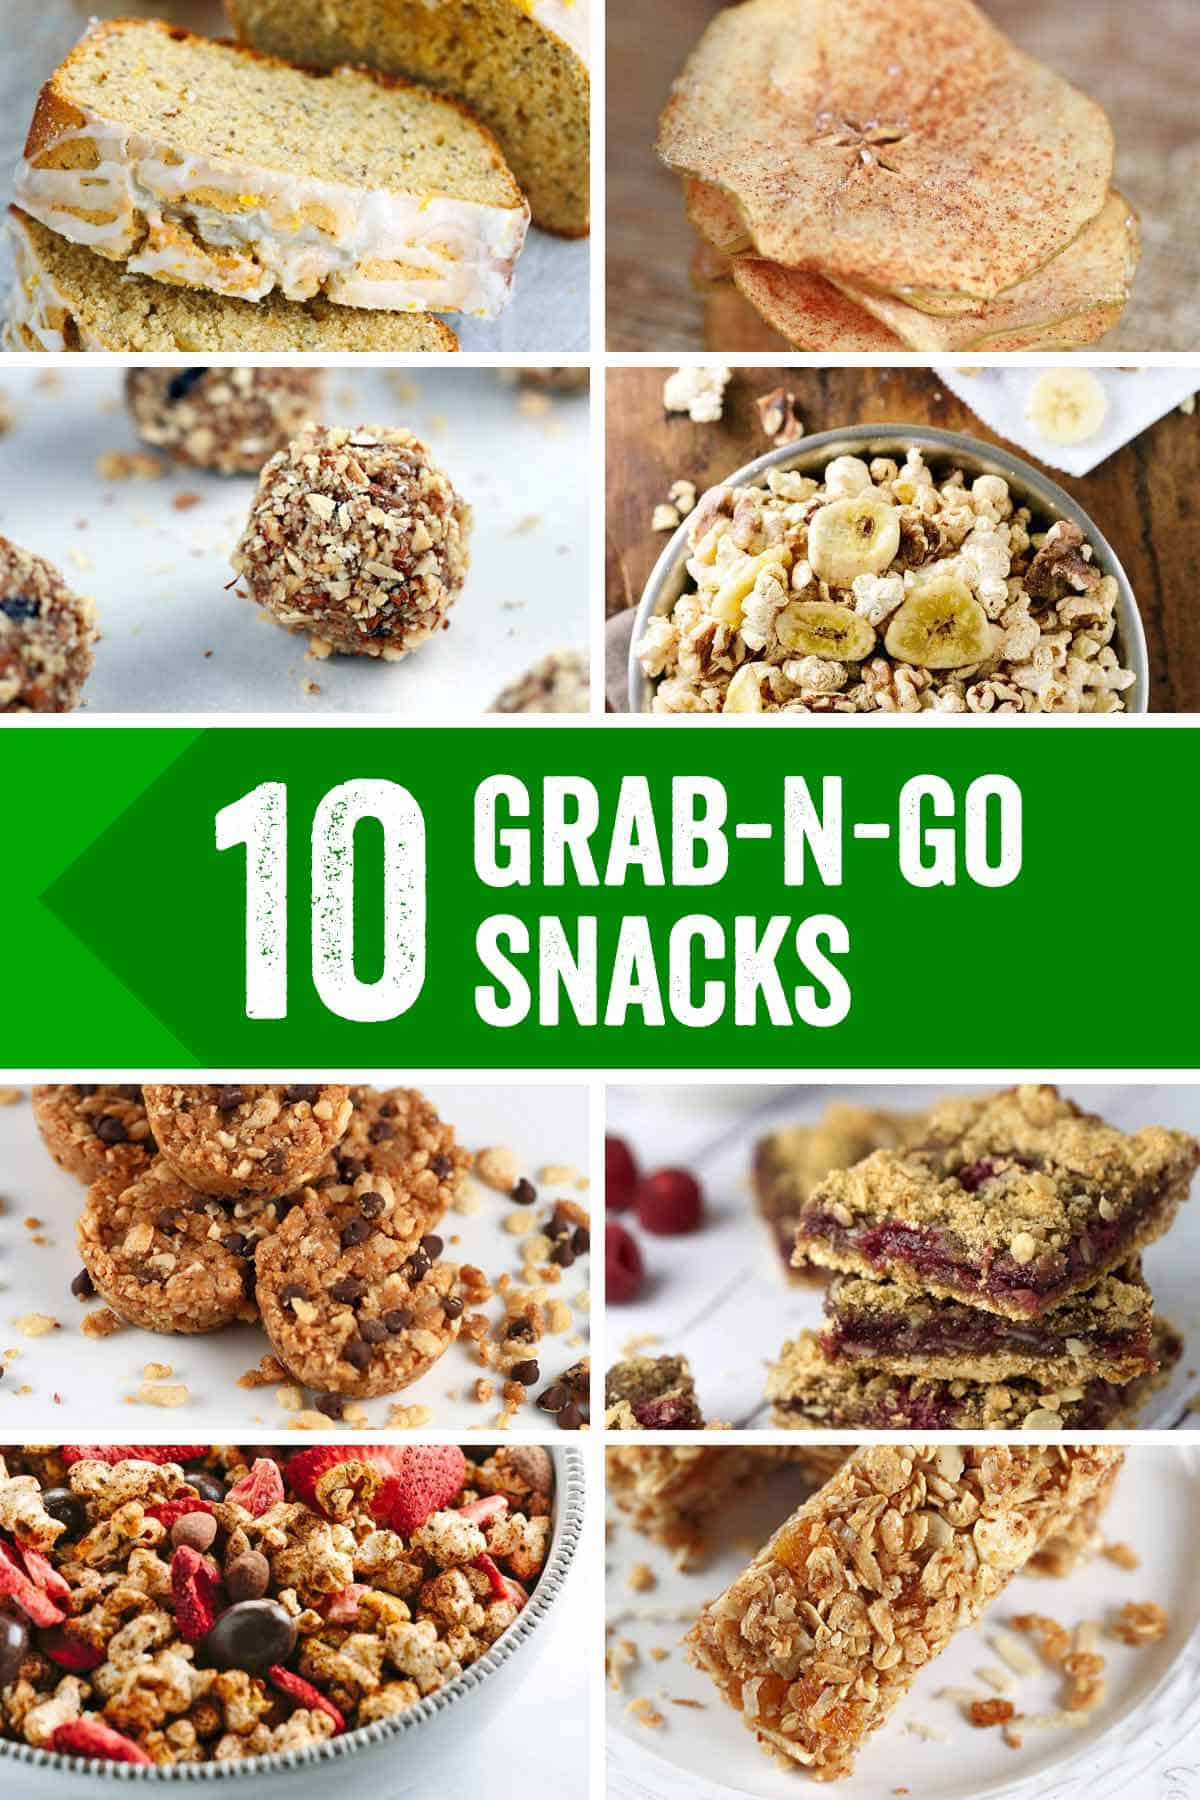 Healthy Portable Snacks  10 Energizing The Go Snacks To Fight Daily Fatigue